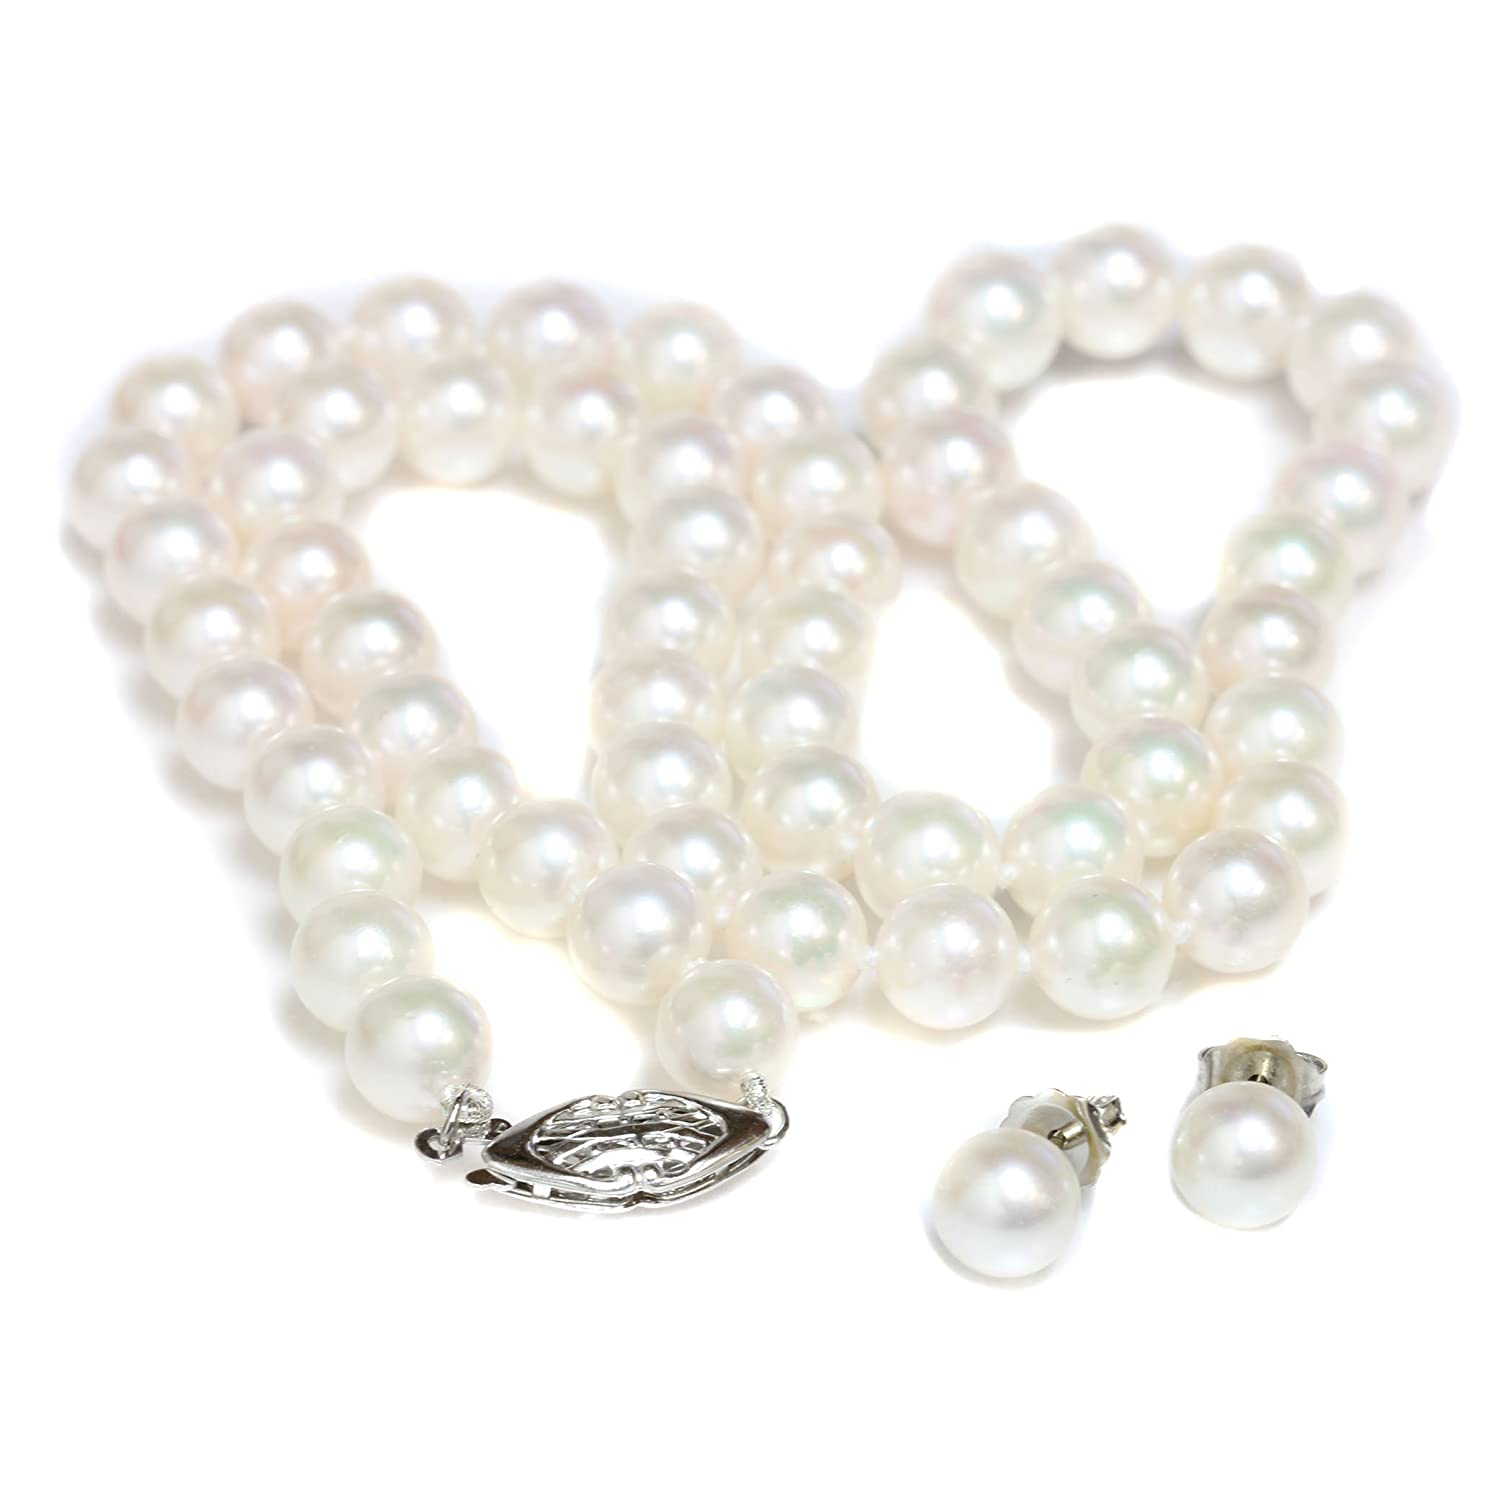 926d210681d Amazon.com: Seven Seas Pearls Cultured Akoya Pearl Necklace Earrings ...